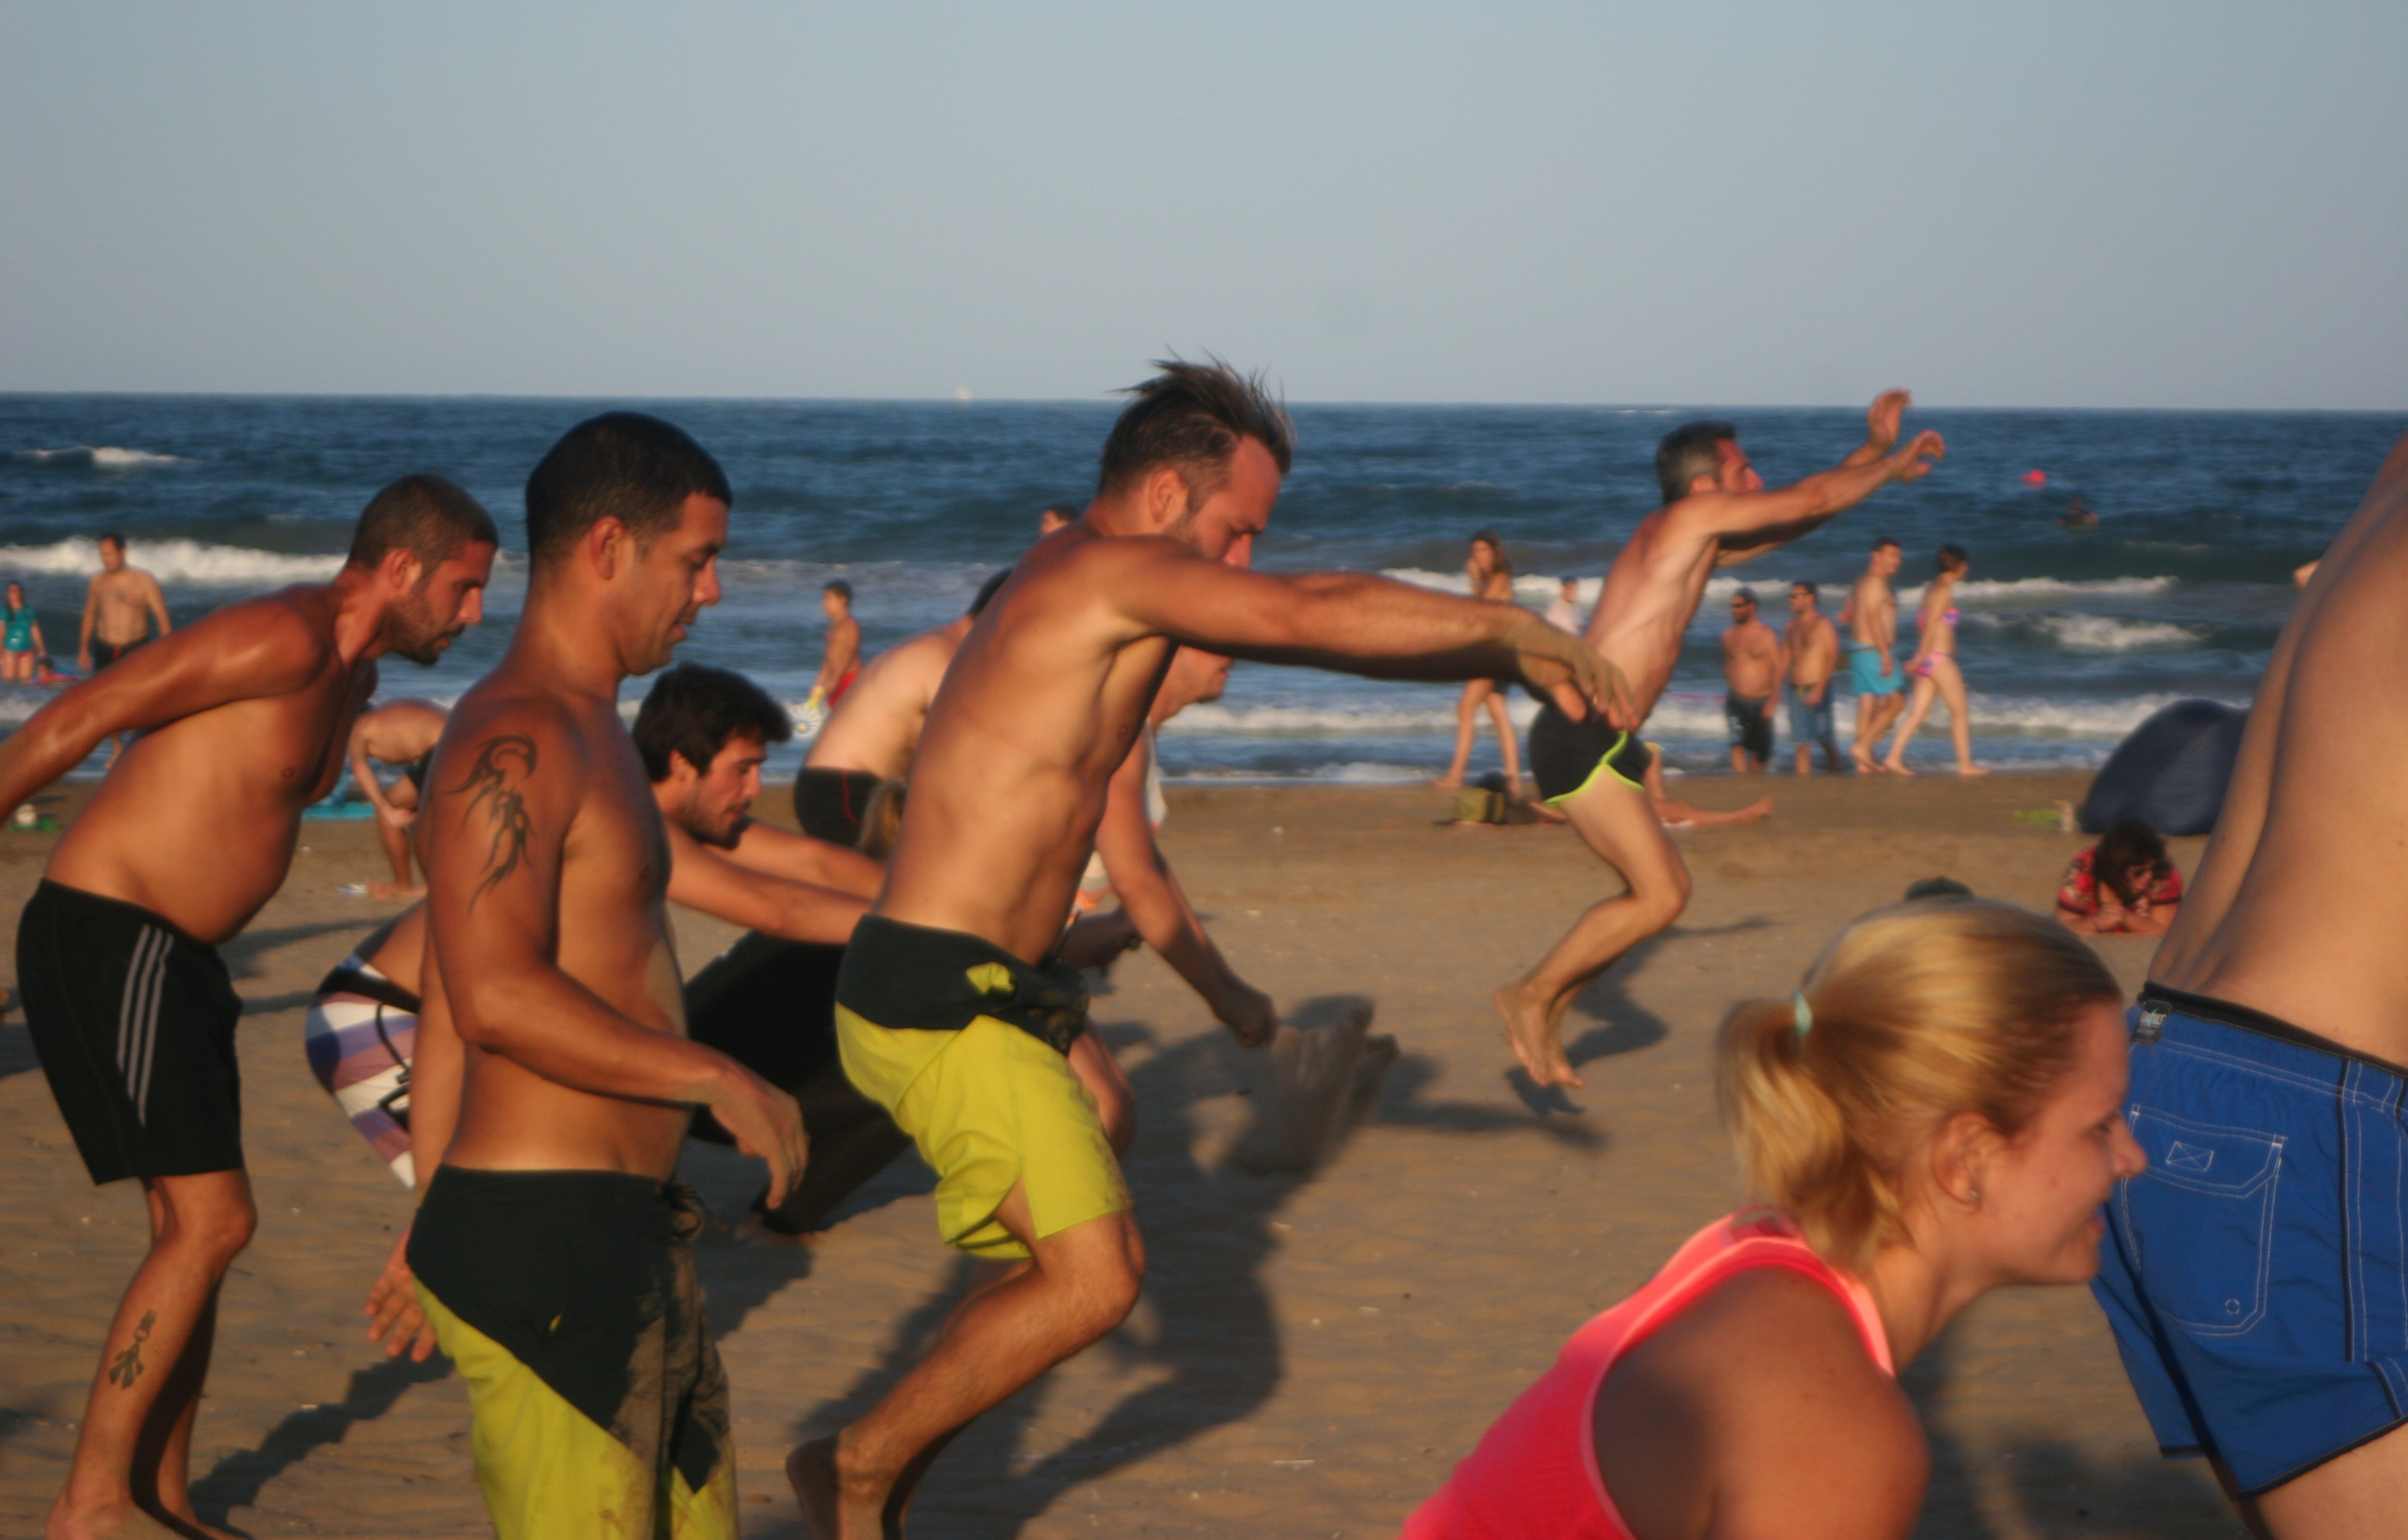 Full_CrossFit_Beach_Wod_V2_2015-19.jpg